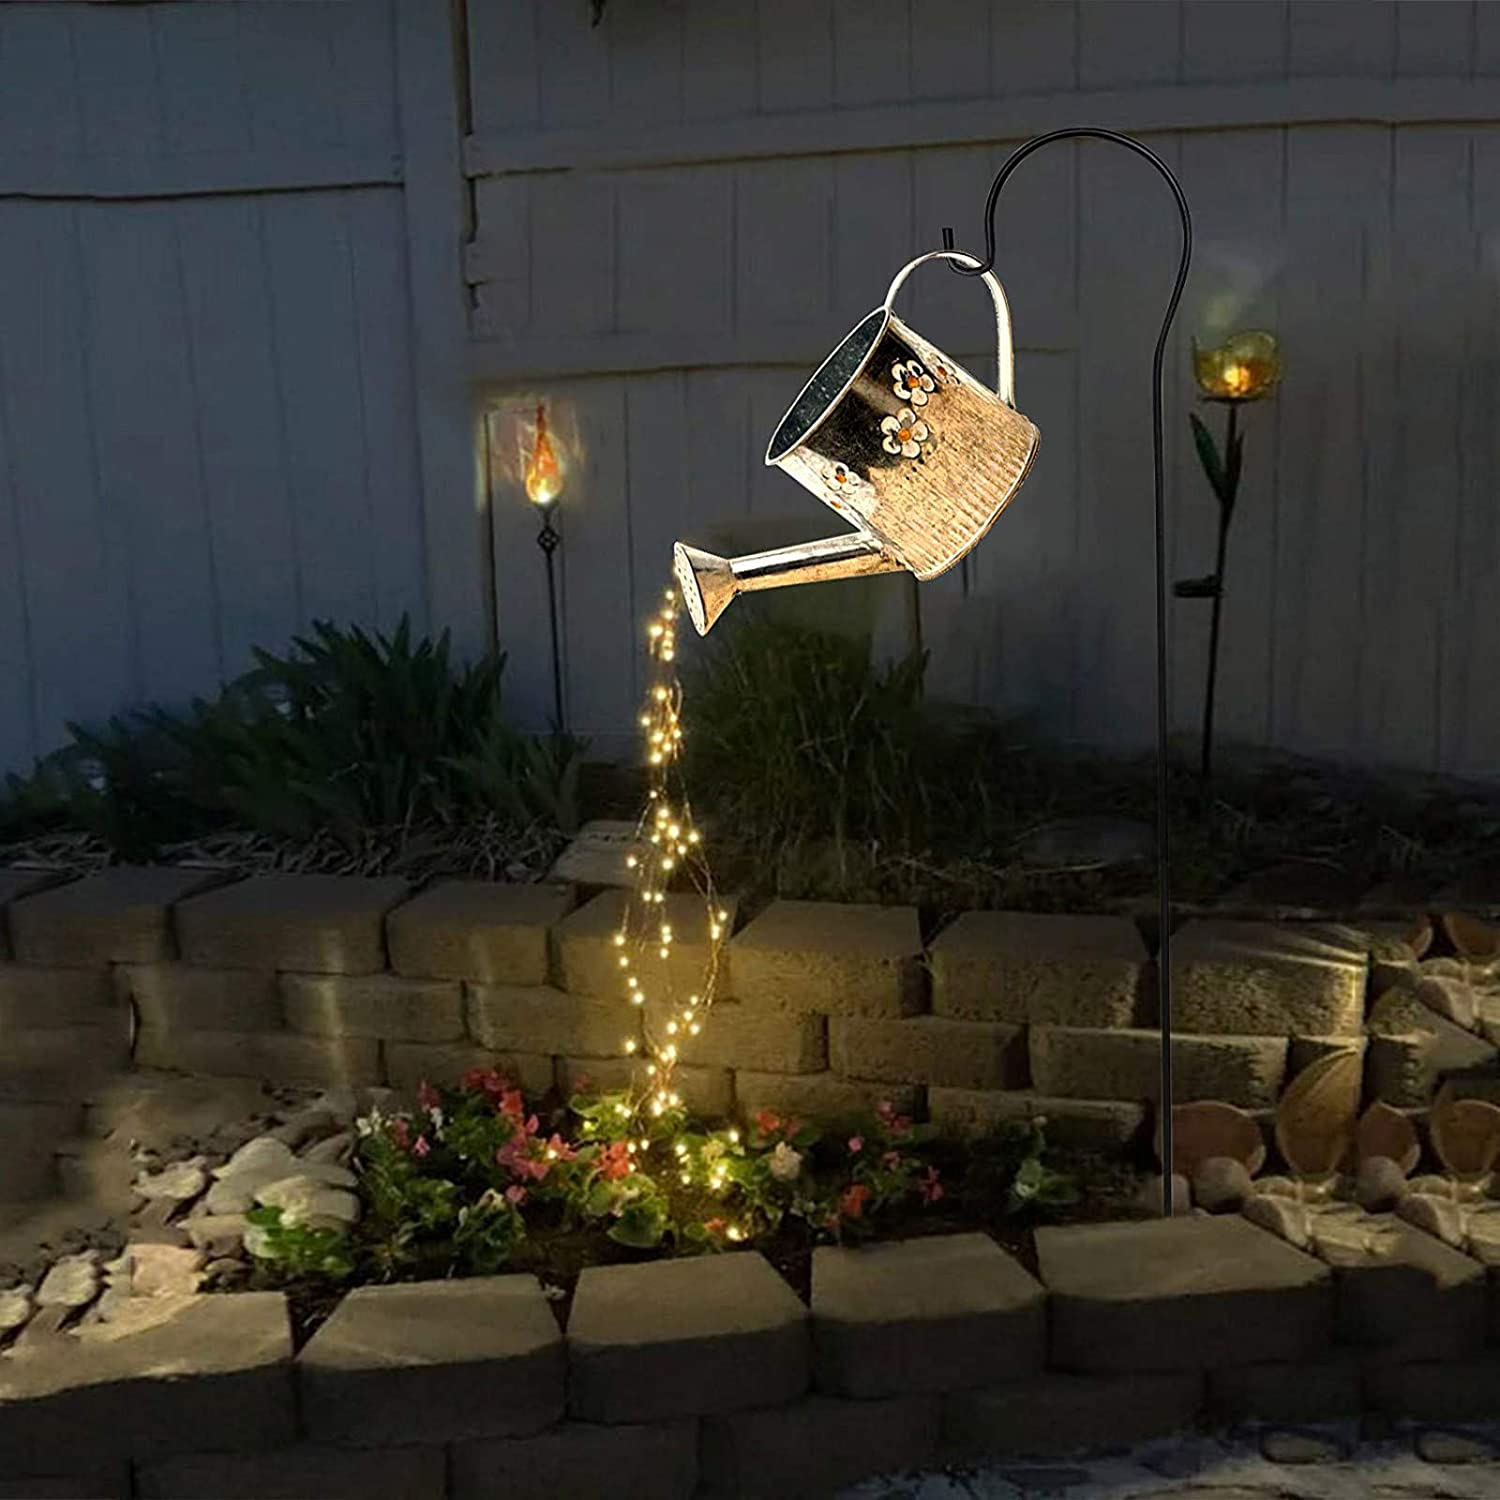 DIY Star Shower Garden Art Can Light Outdoor Decor with Stake Firefly Bunch LED Lights Fairy Copper Wire Waterproof String Lights Butterfly Ladybug Vine Solar Watering Lights (G)